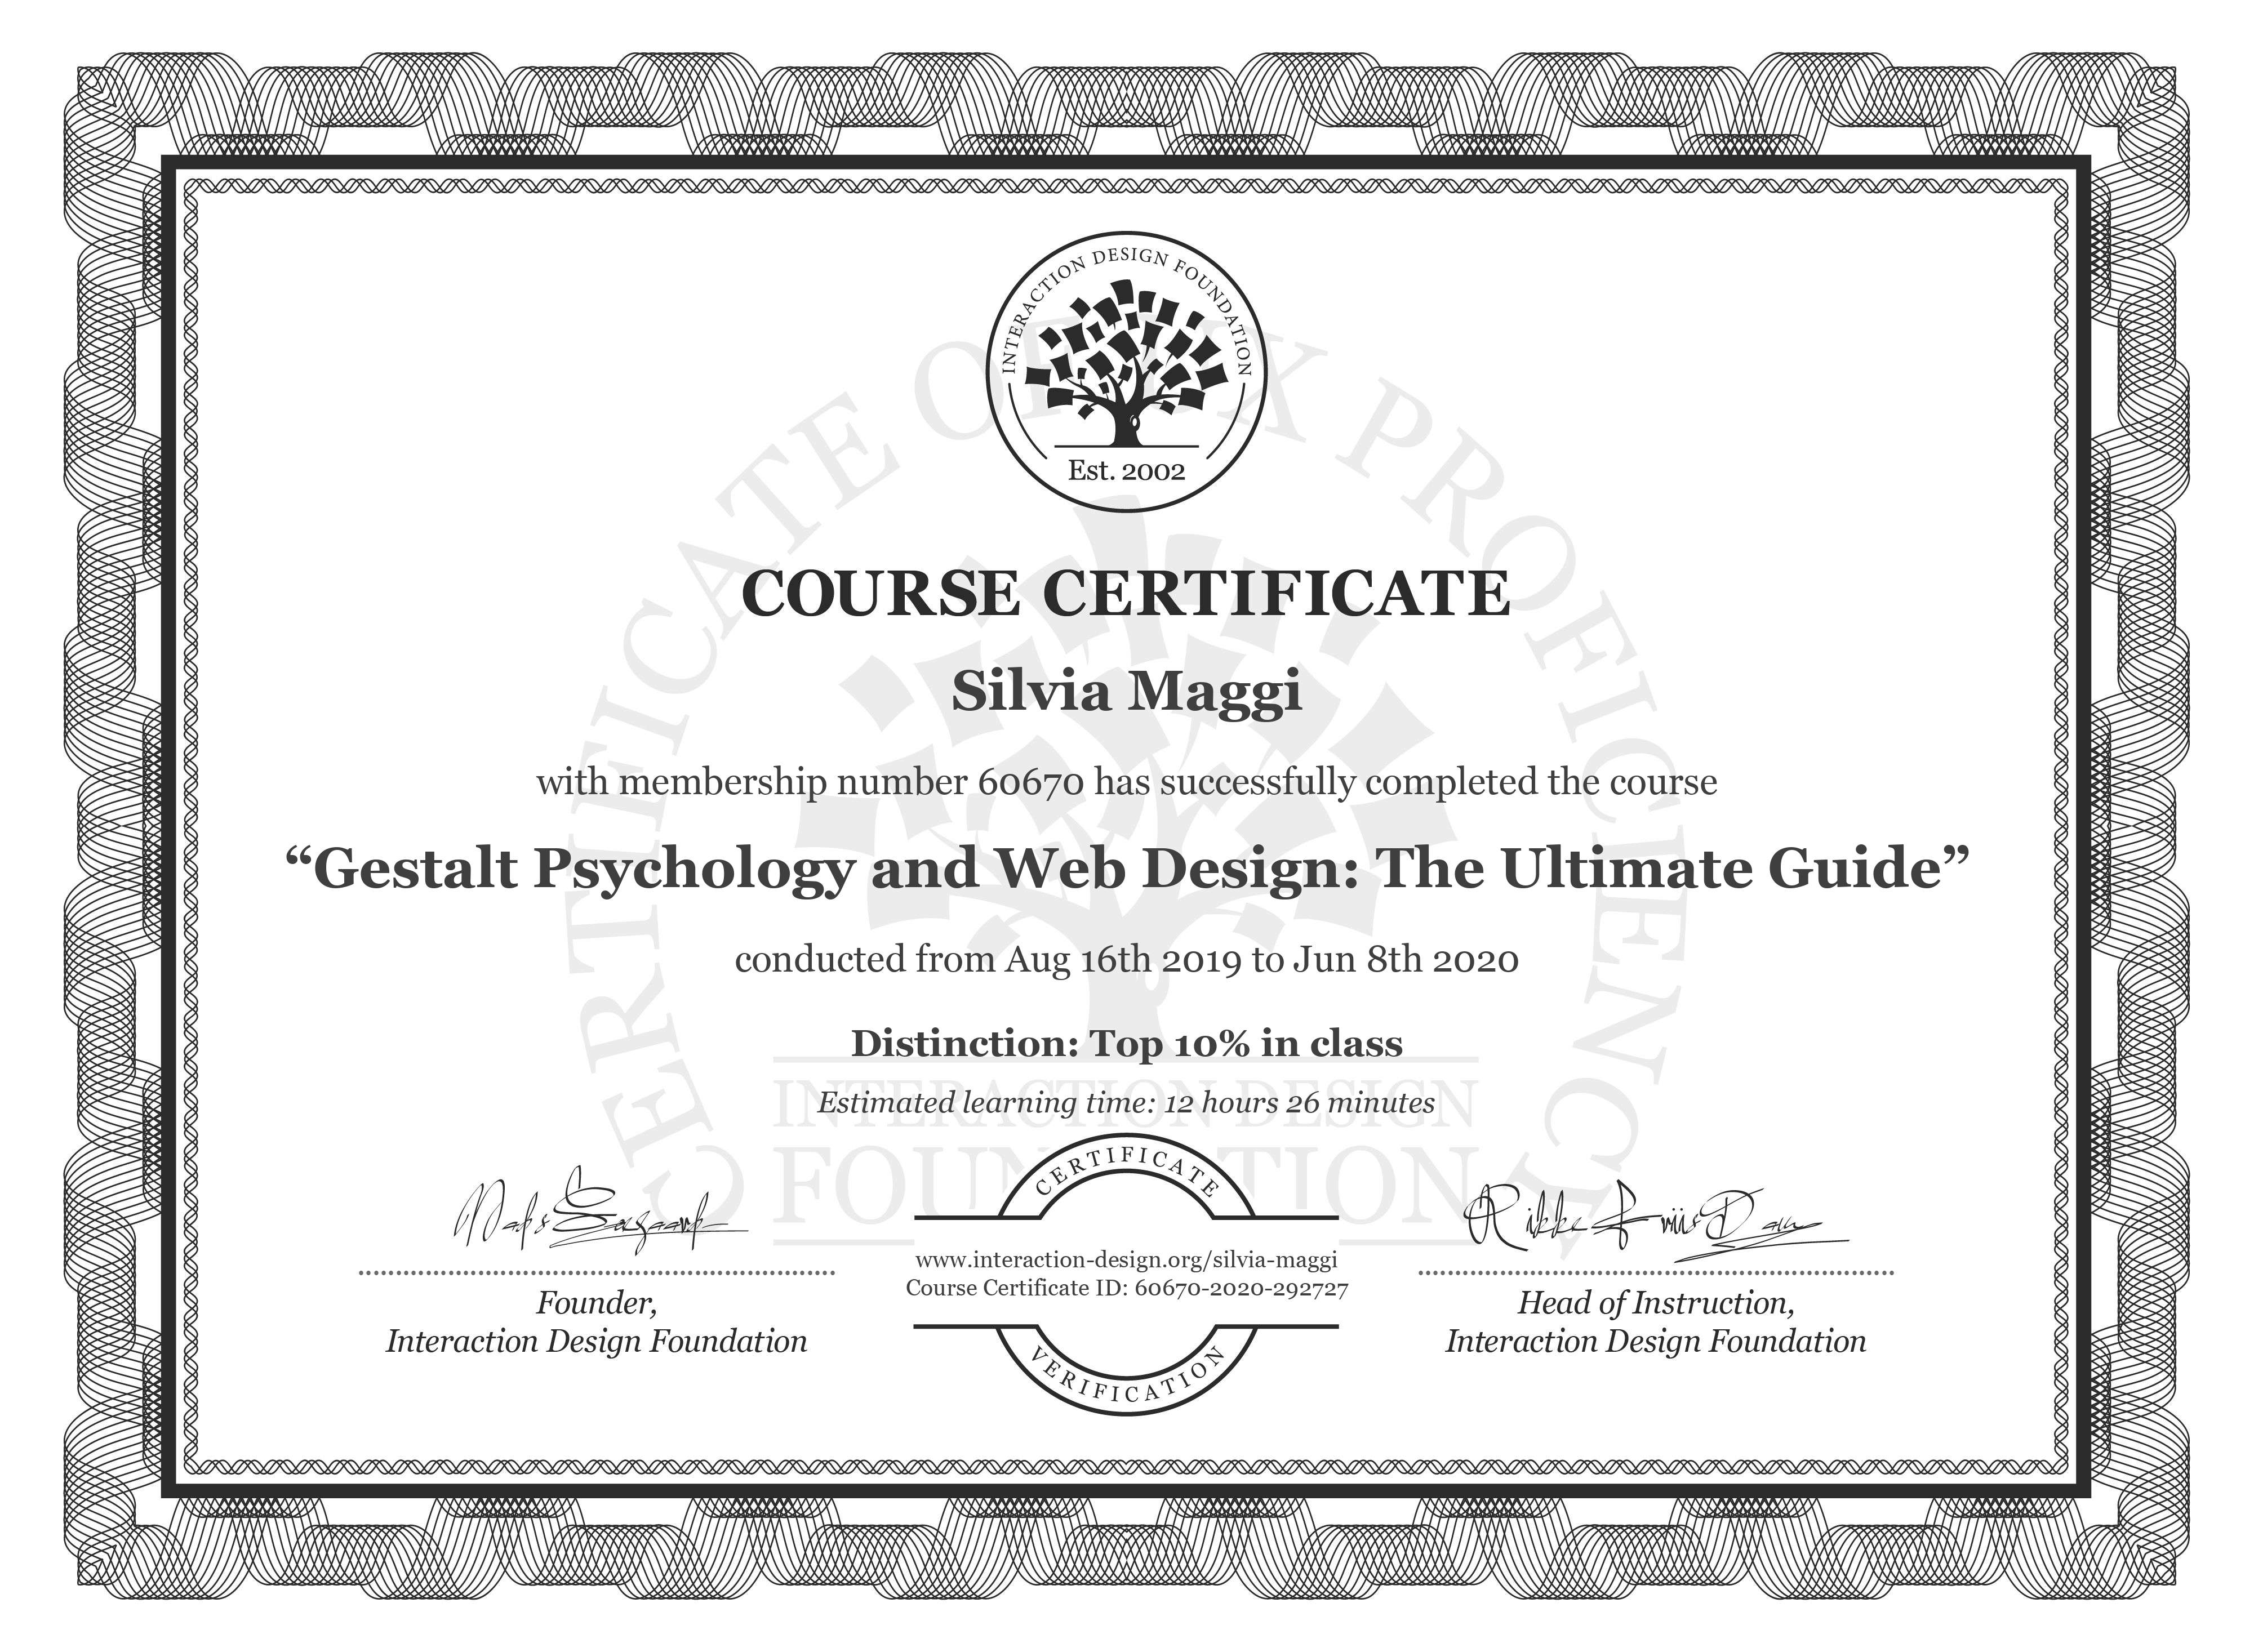 Silvia Maggi's Course Certificate: Gestalt Psychology and Web Design: The Ultimate Guide